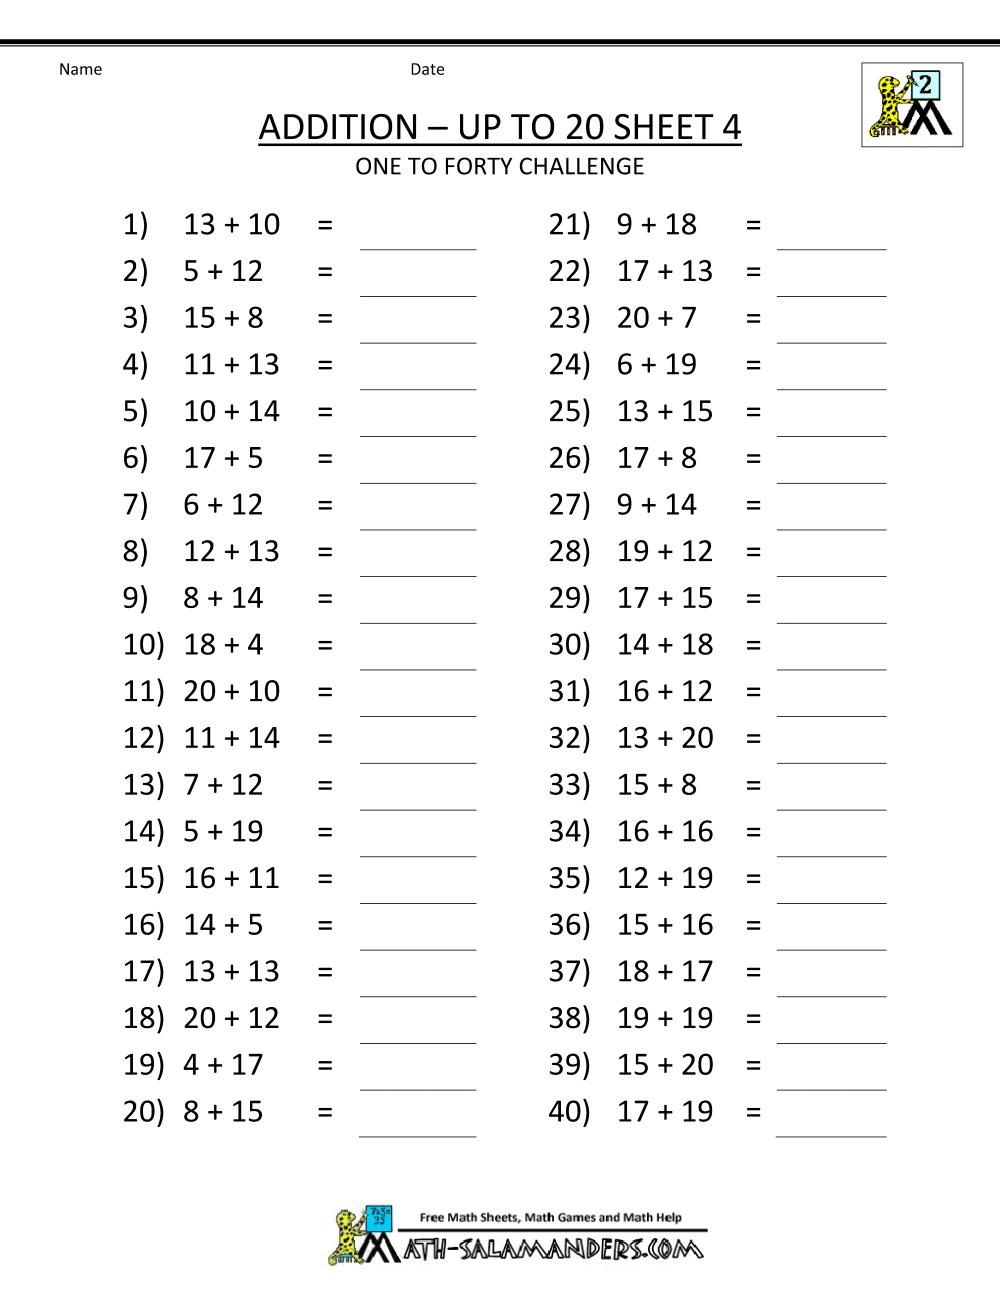 10 2nd Grade Math Facts Worksheets Printable Mental Maths Worksheets 4th Grade Math Worksheets Math Fact Worksheets